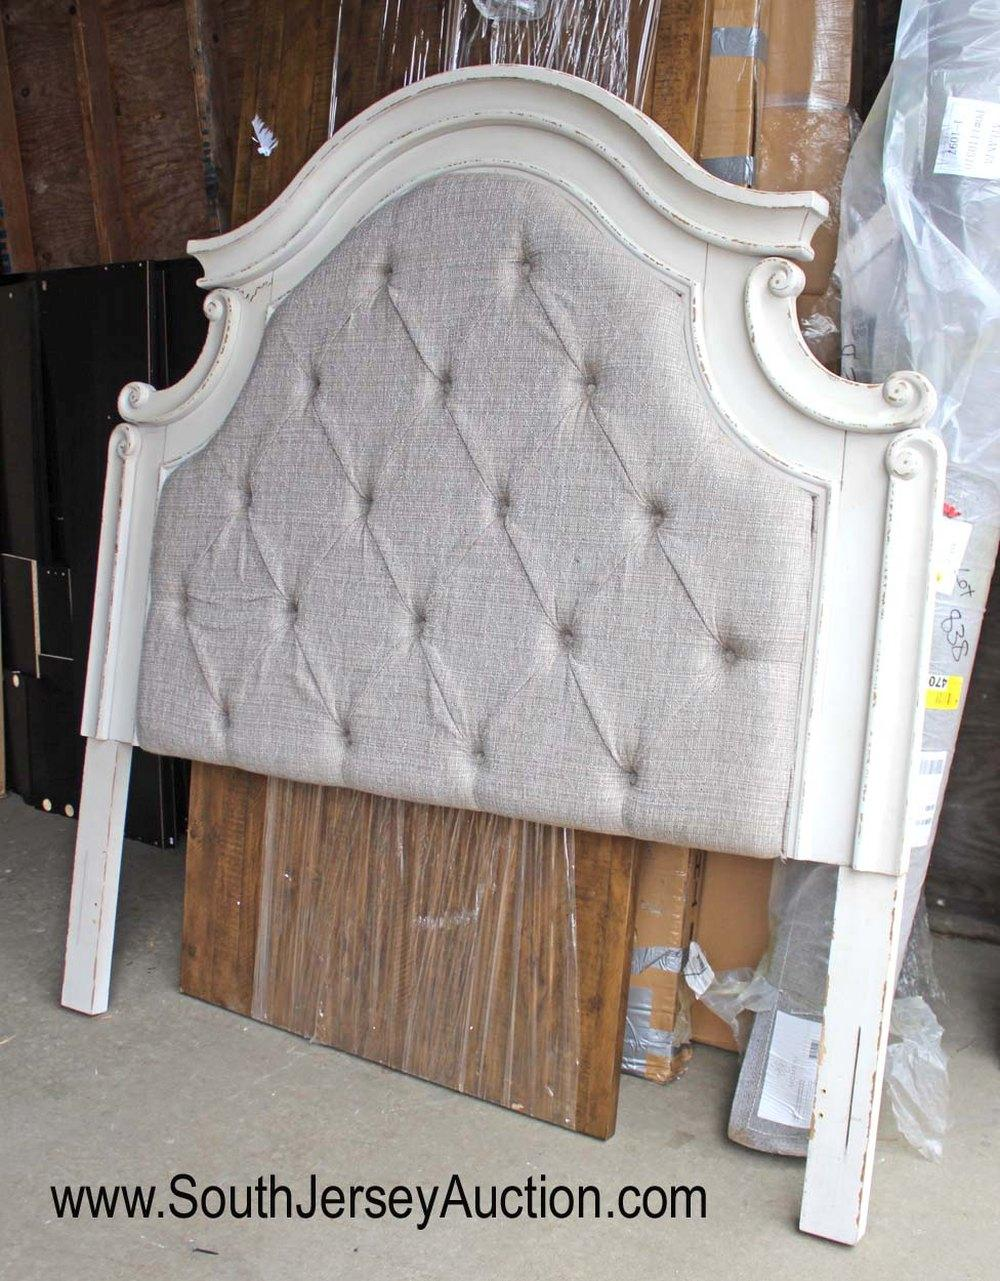 New Shabby Chic Upholstered Queen Headboard with Slight Damage